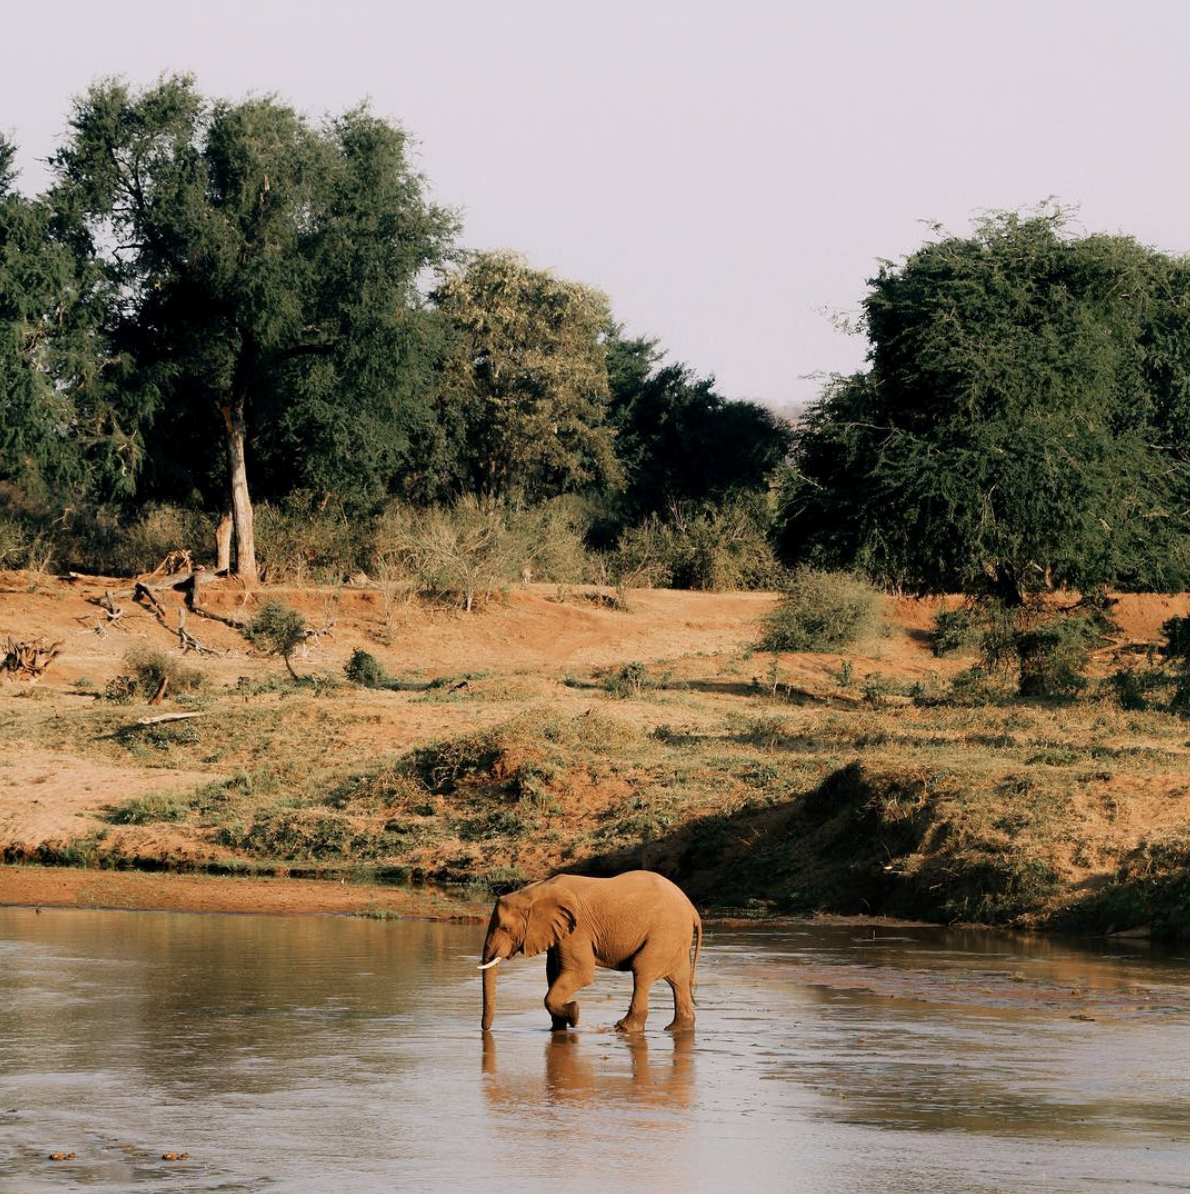 Our afternoon game drives are always the best opportunity to get that perfect golden hour shot. We love this shot by   @lea_crafford   of a herd of elephants cooling off in the river after a hot day.